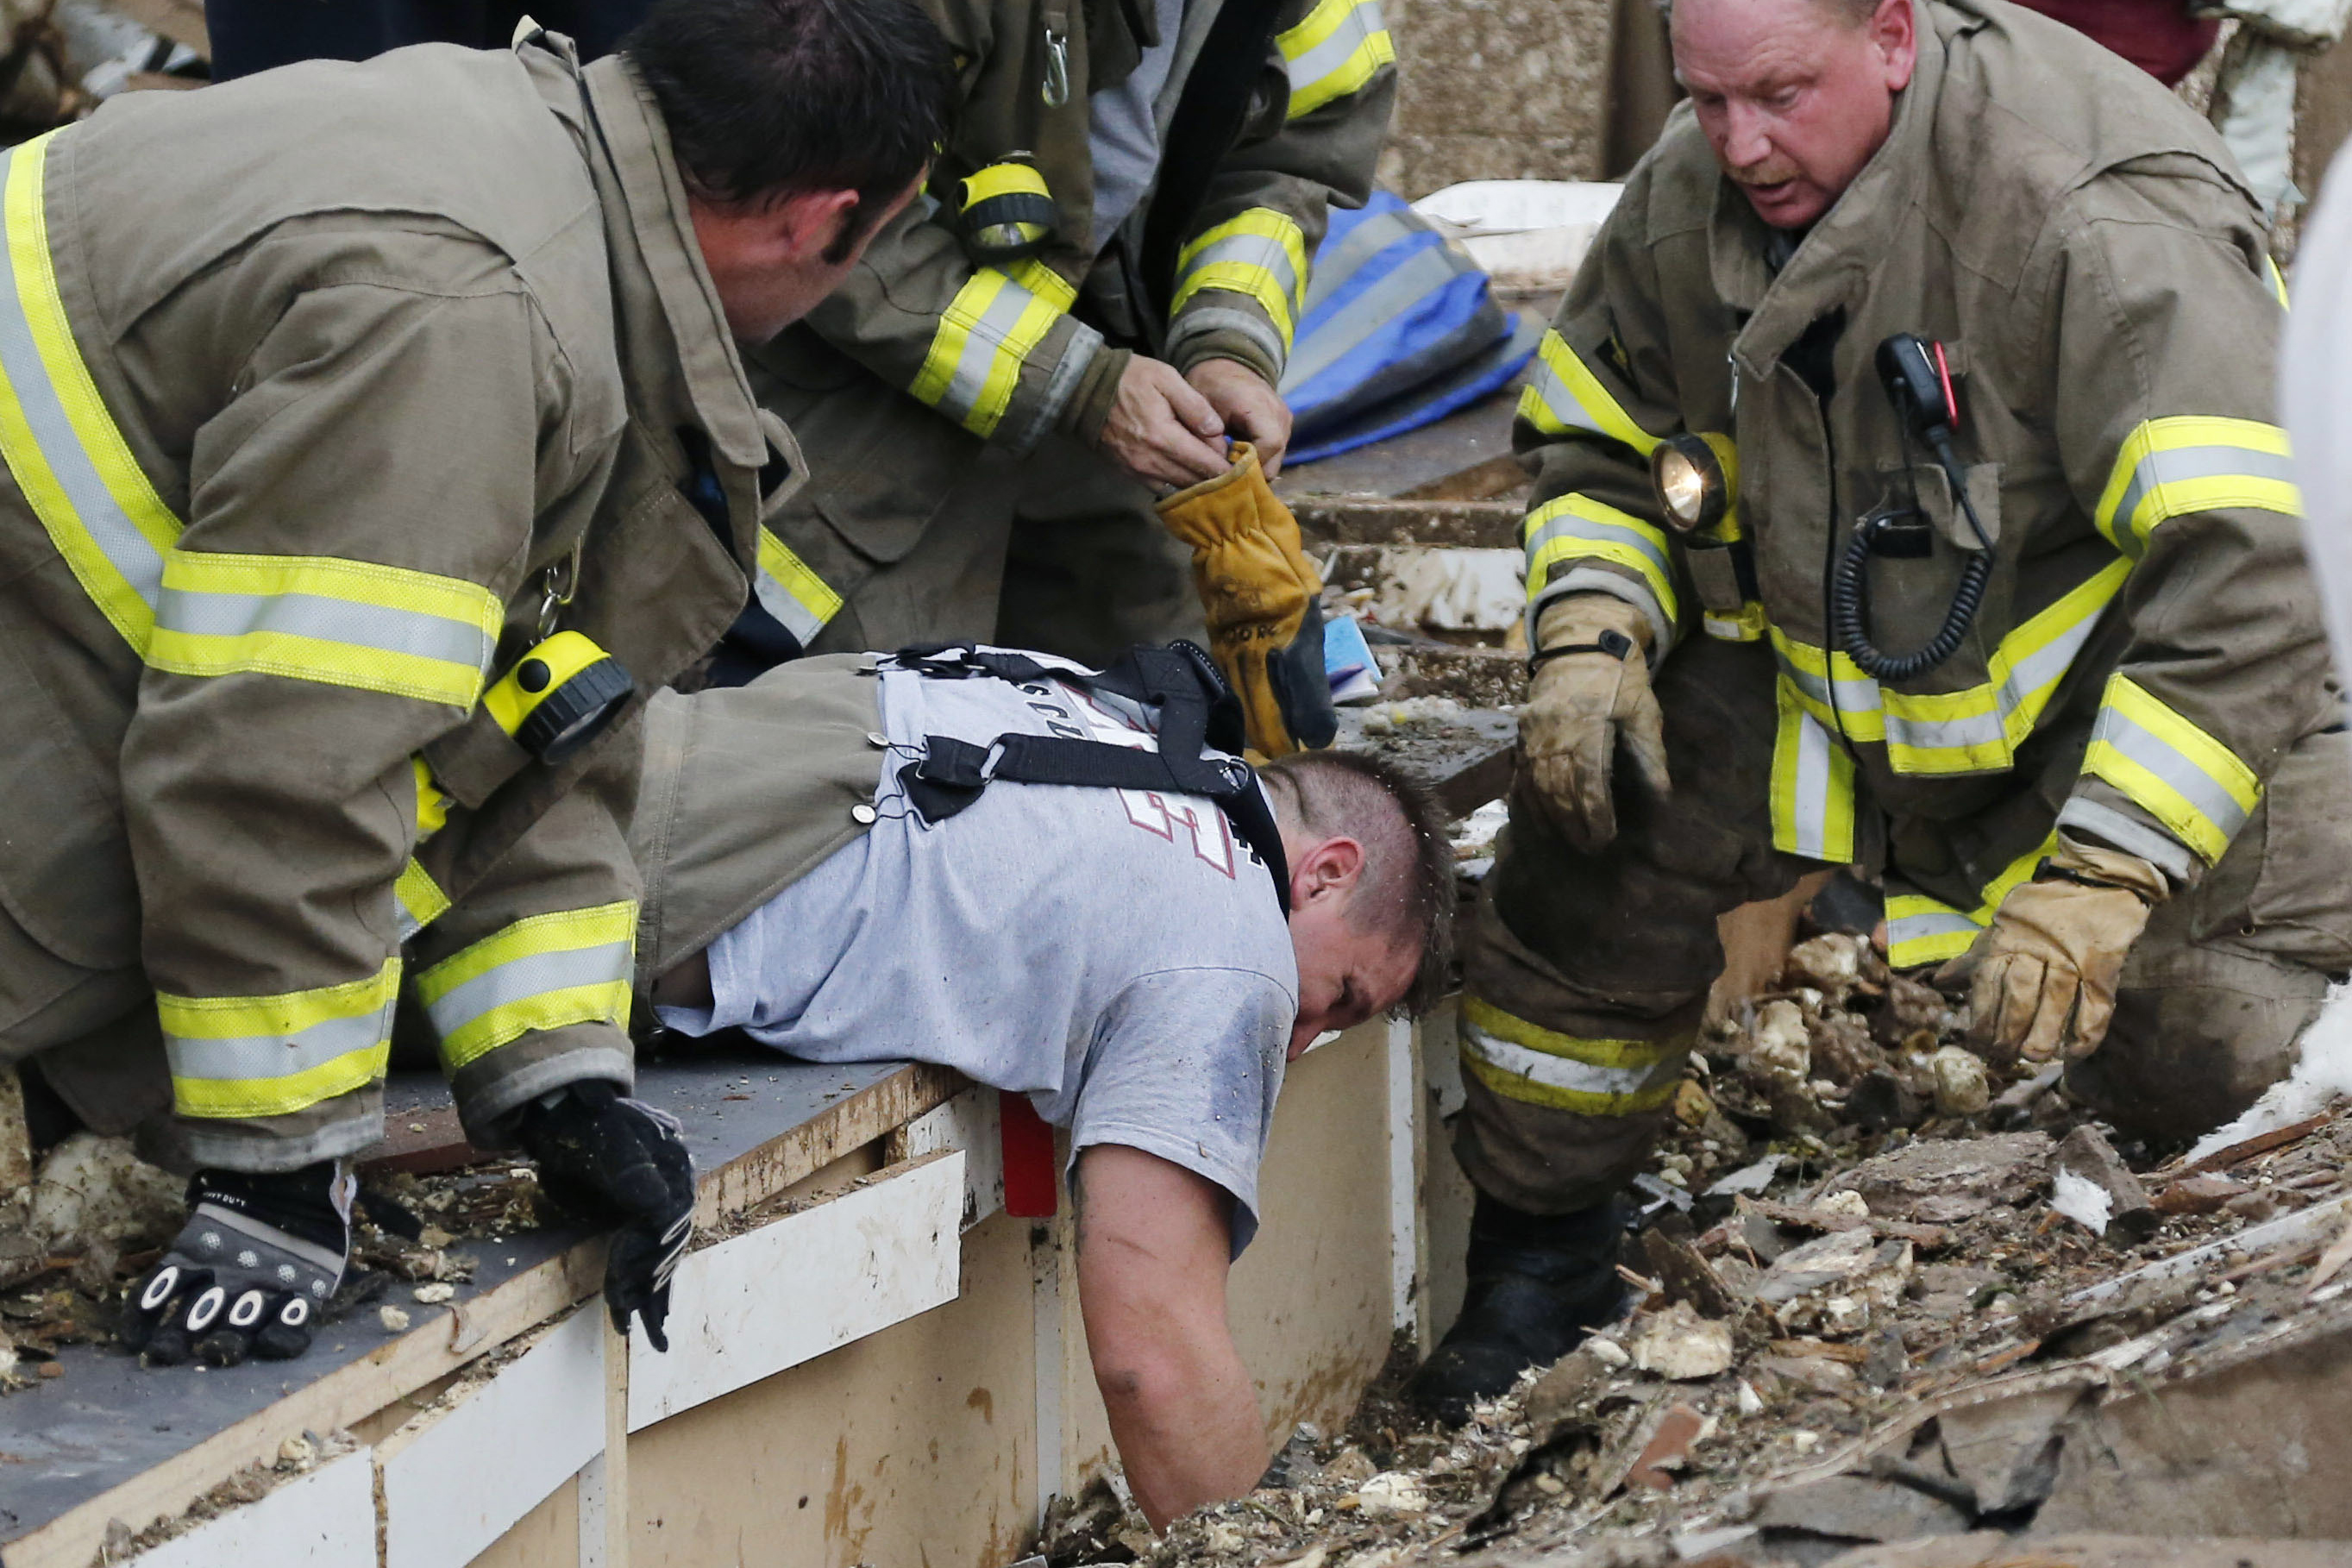 Rescue workers dig through the rubble of a collapsed wall at Plaza Tower Elementary School to free trapped students.